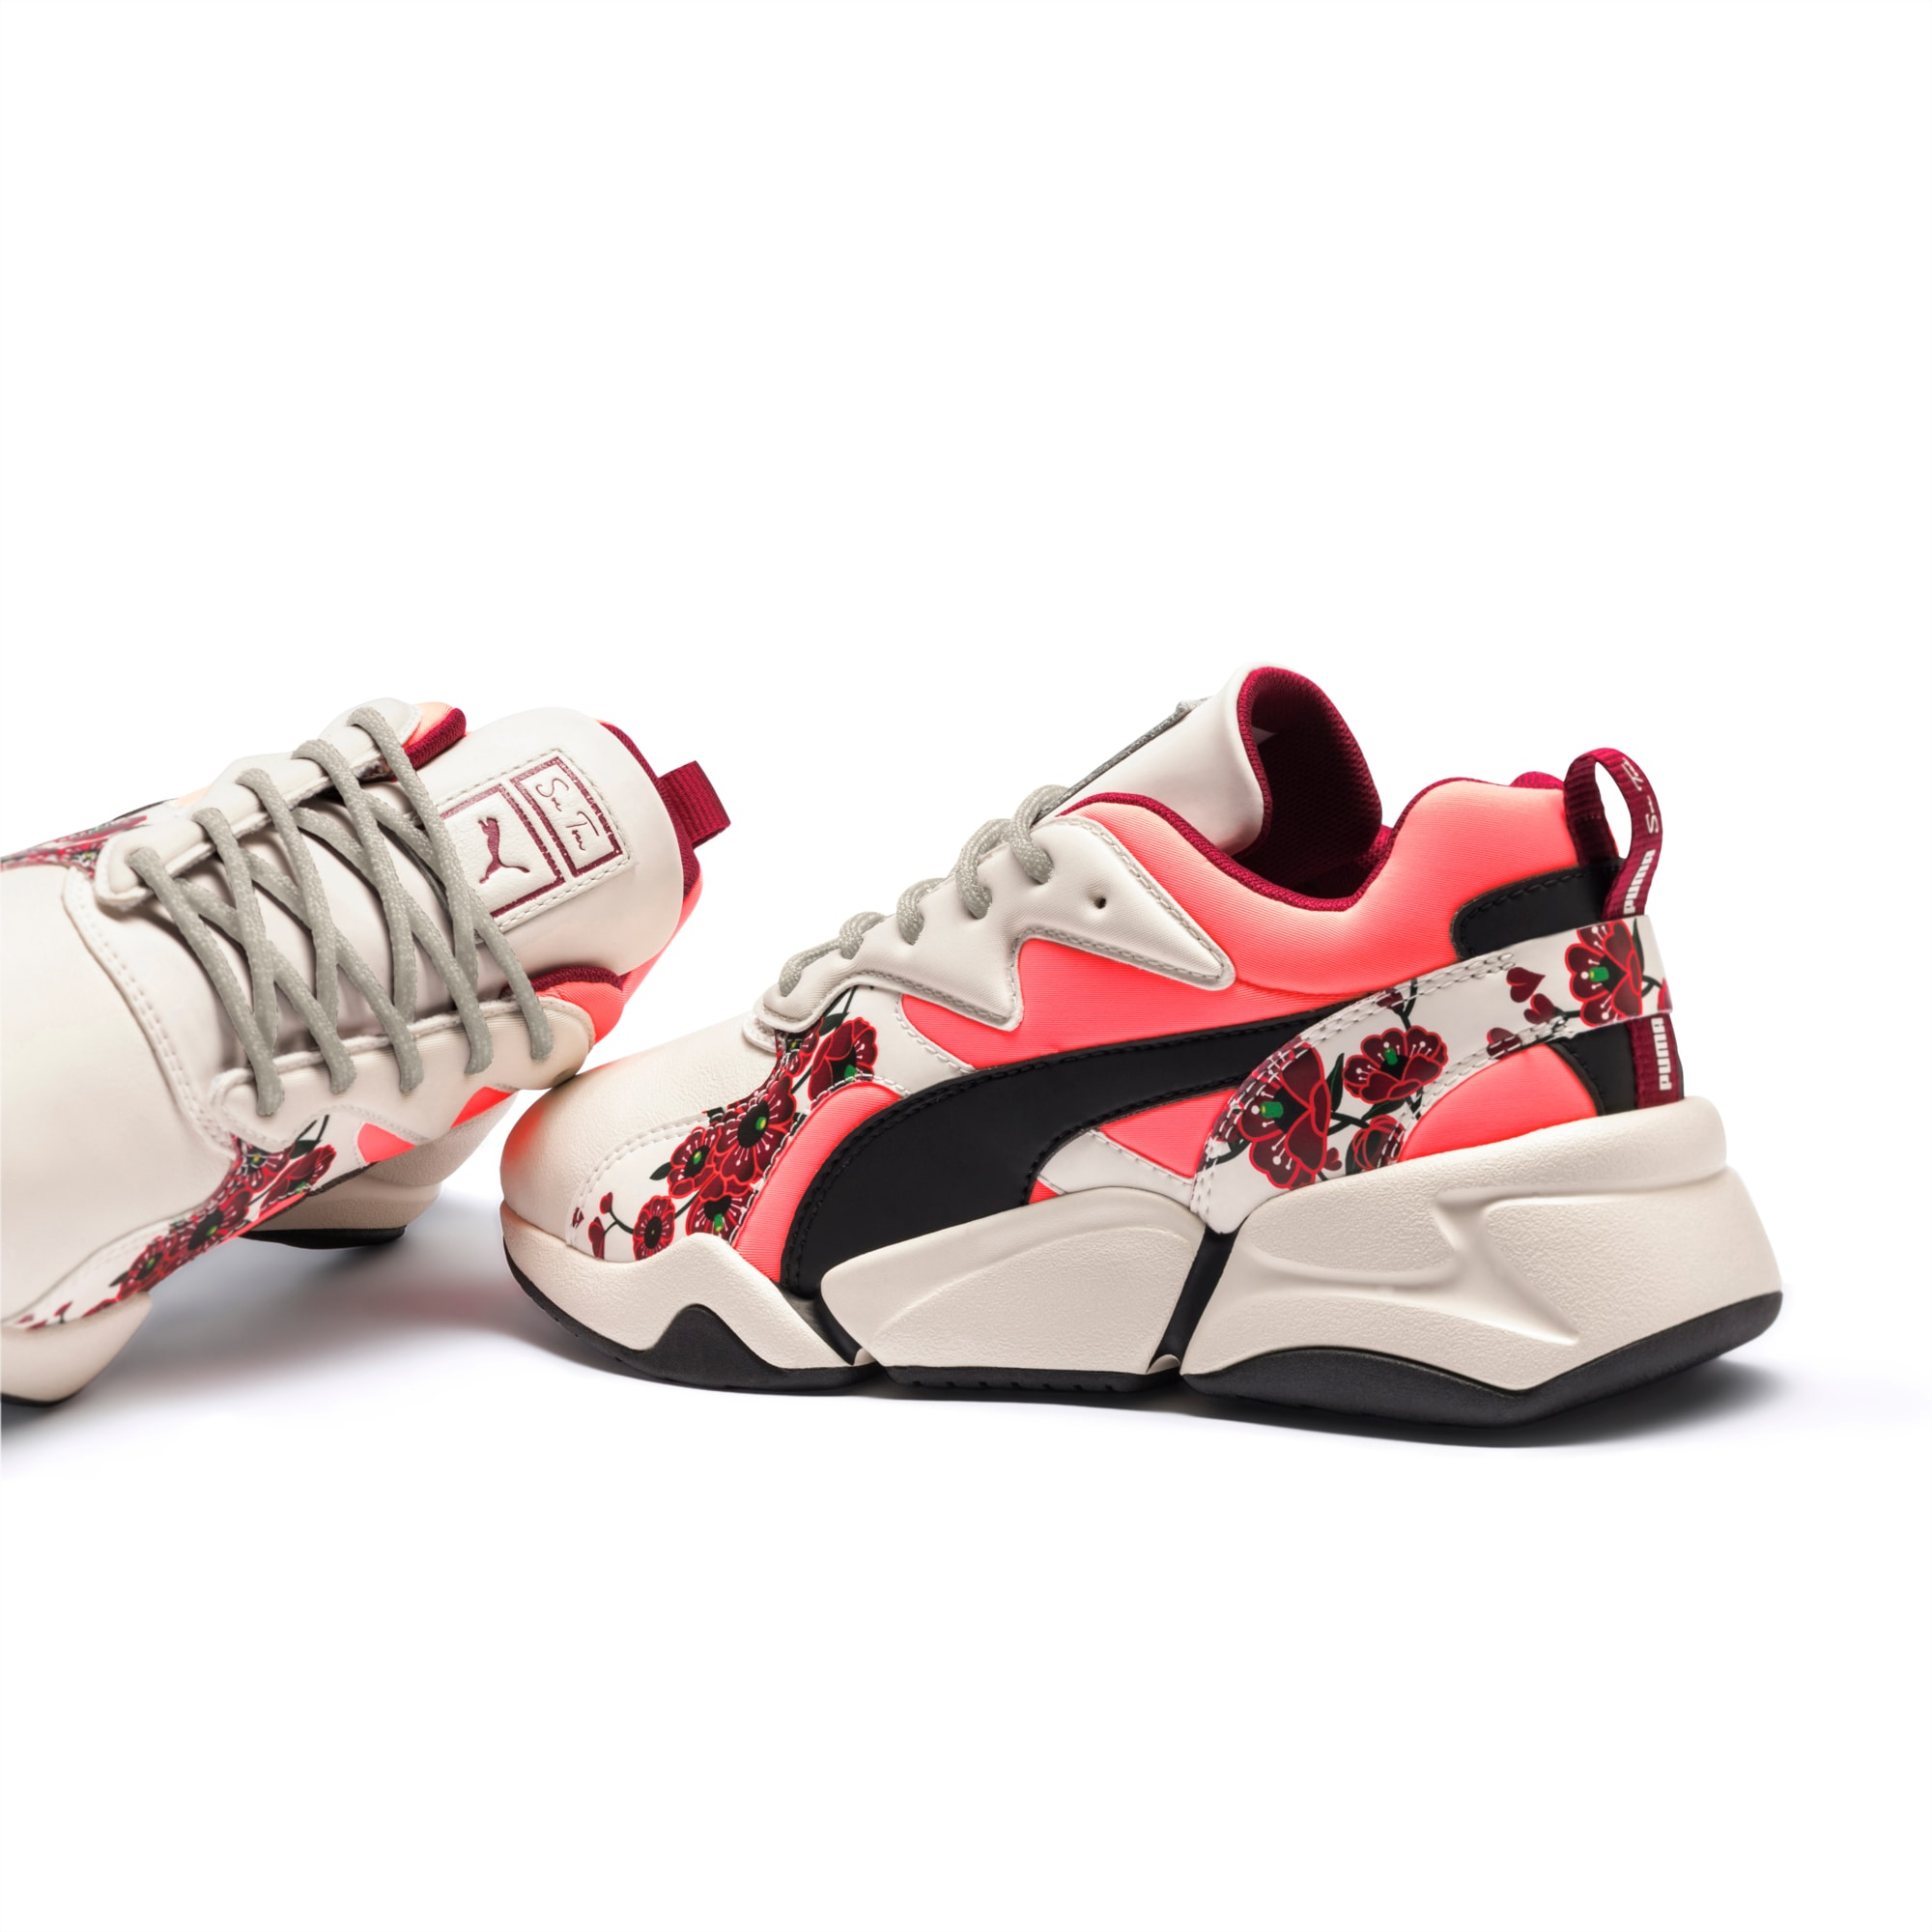 PUMA x SUE TSAI Nova Cherry Bombs Women's Sneakers